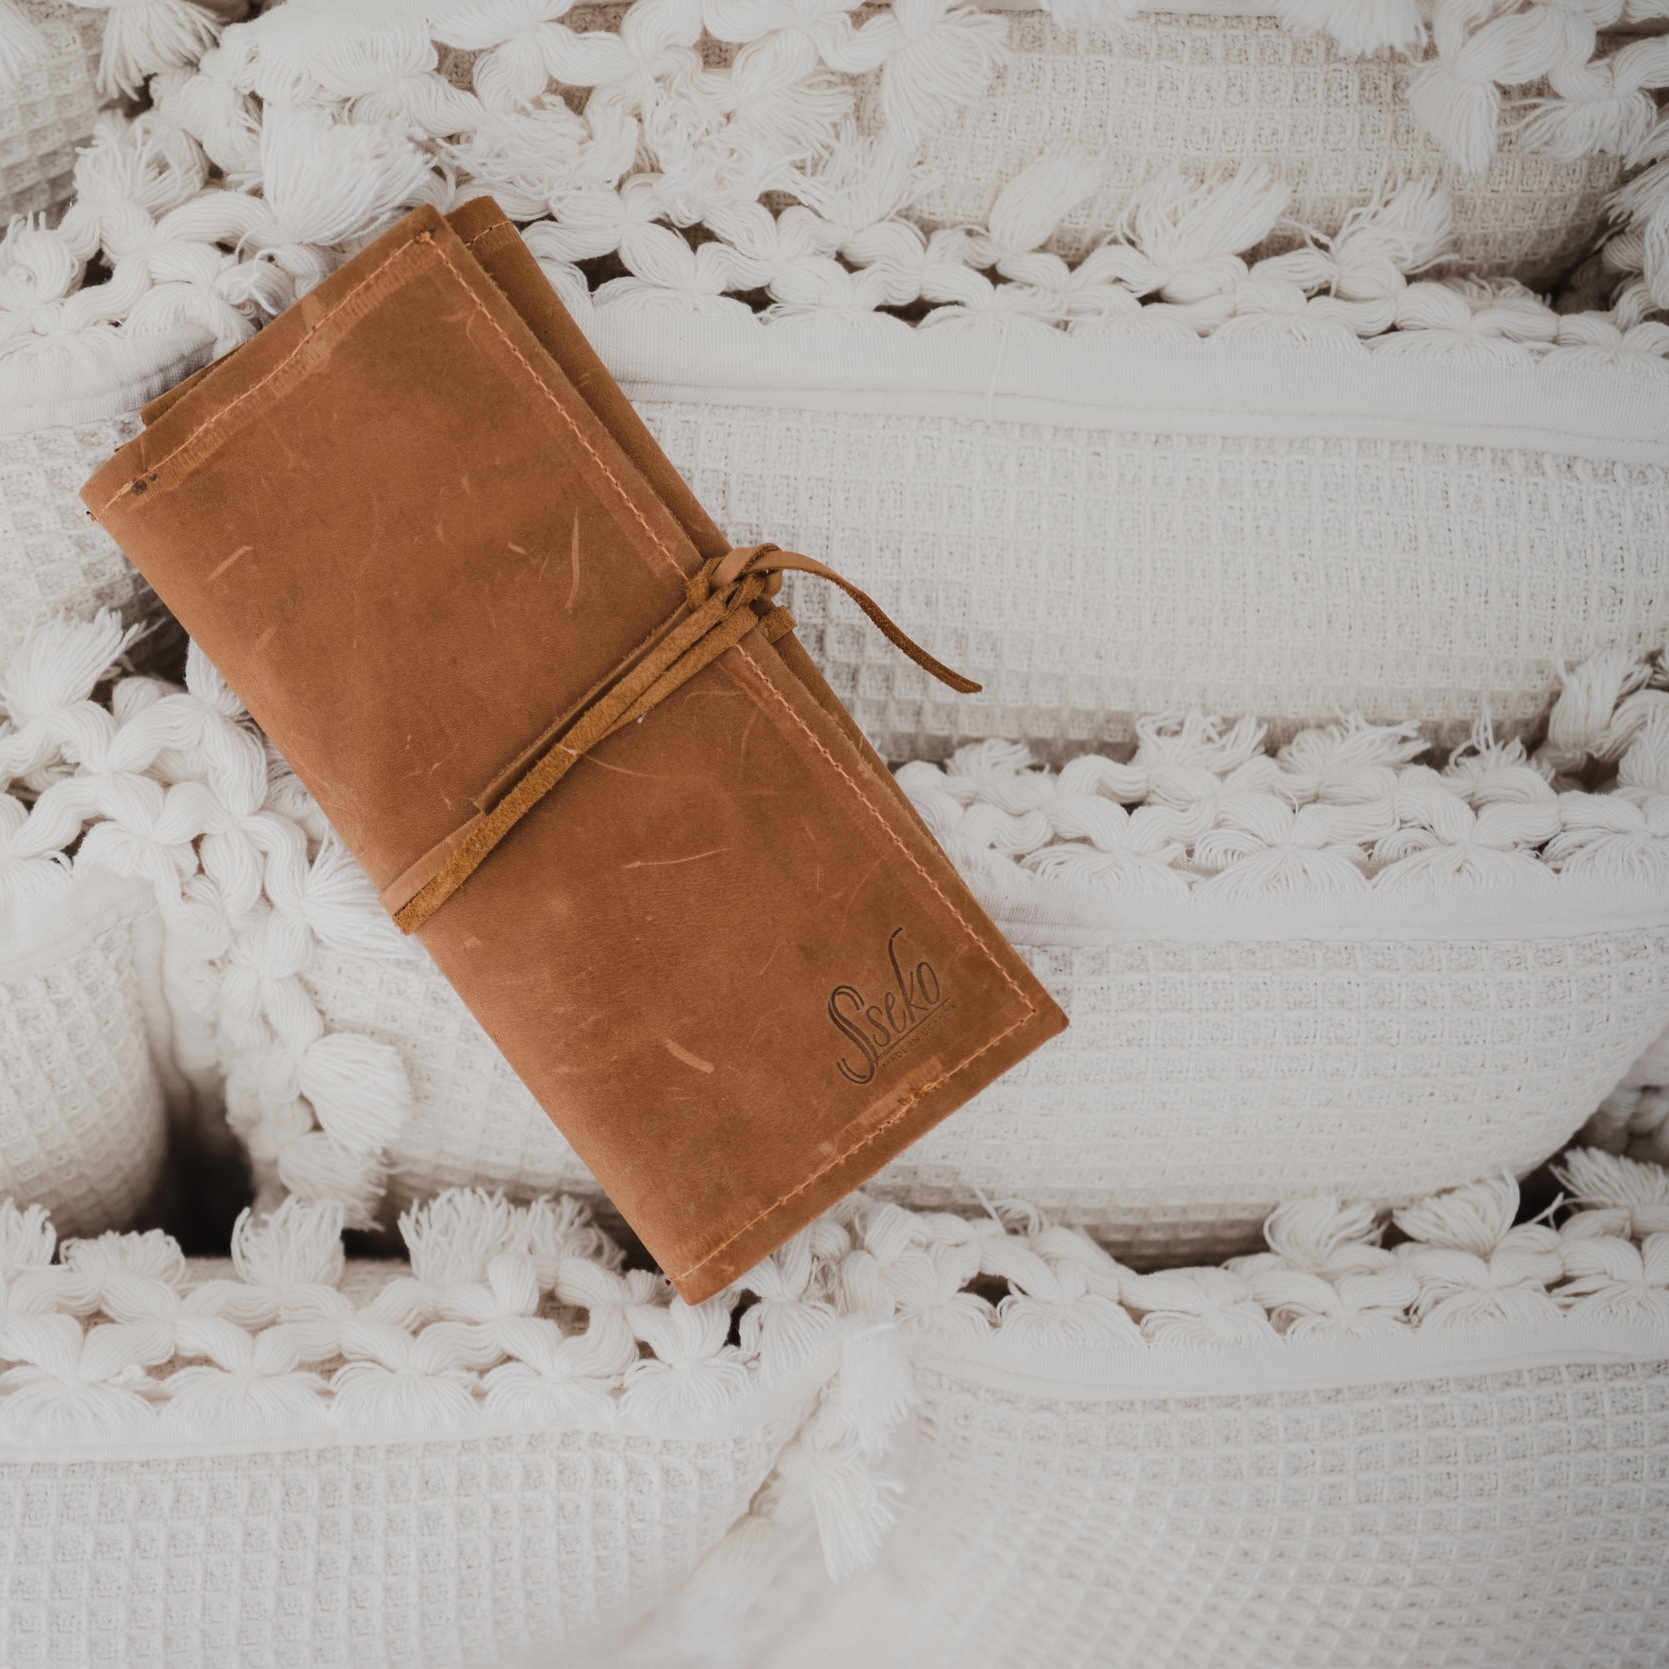 LEATHER JEWELRY ROLL | $59 - Keep your favorite jewelry safe and tangle-free in this Leather Jewelry Roll. The oiled caramel leather will grow even more beautiful over time. This is the perfect piece for gals on the go!